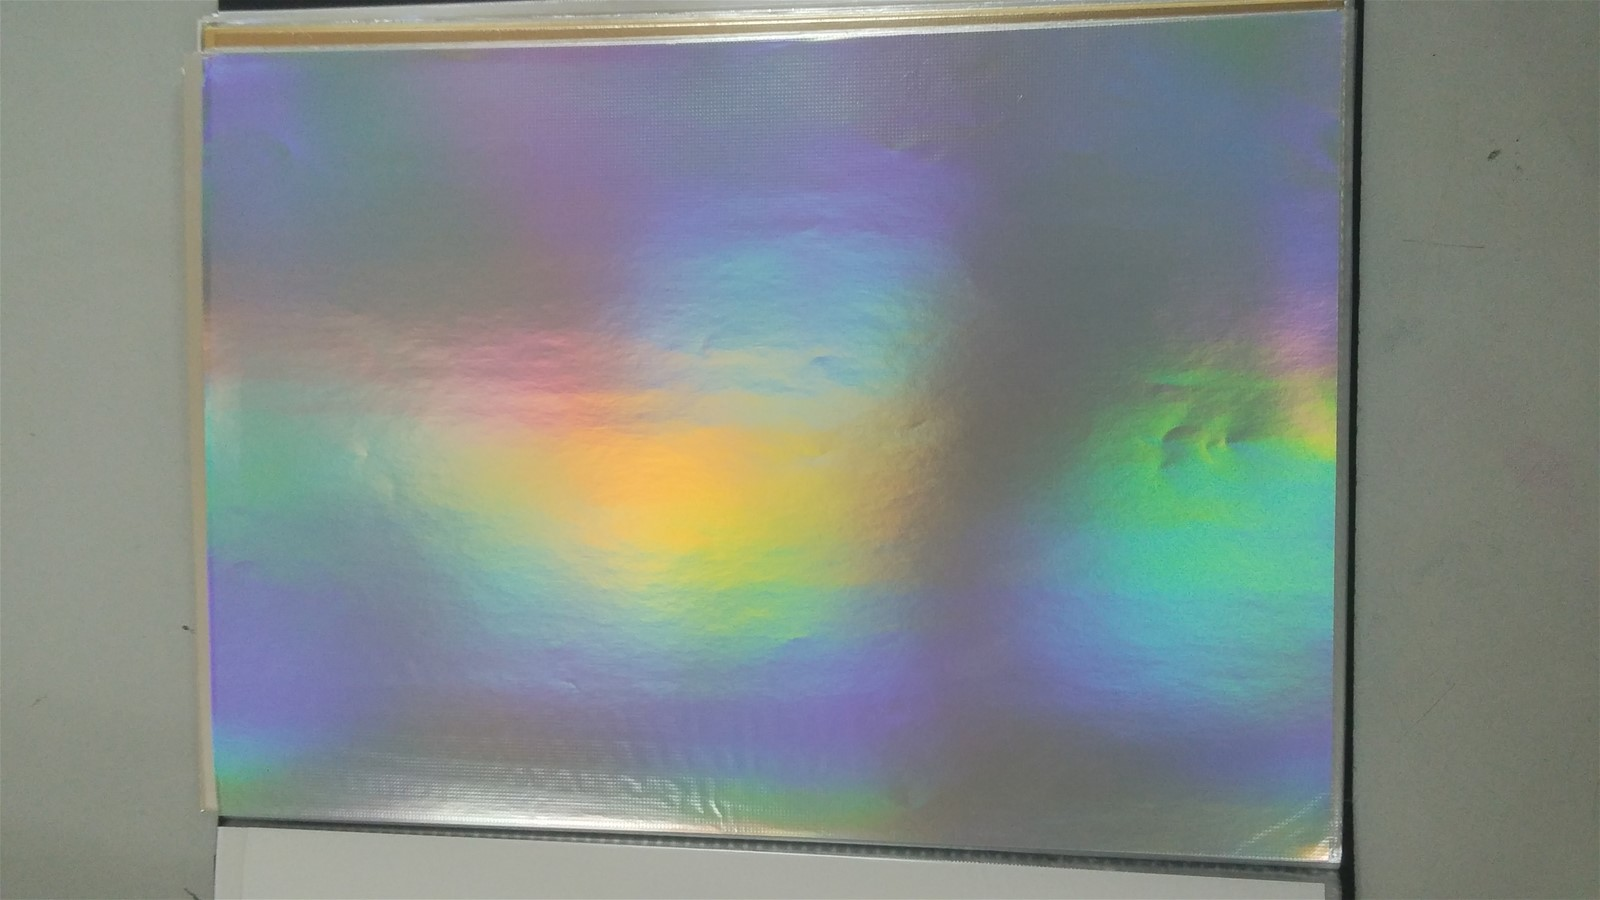 85g Transfer Laser Silver Paper From China Manufacturer